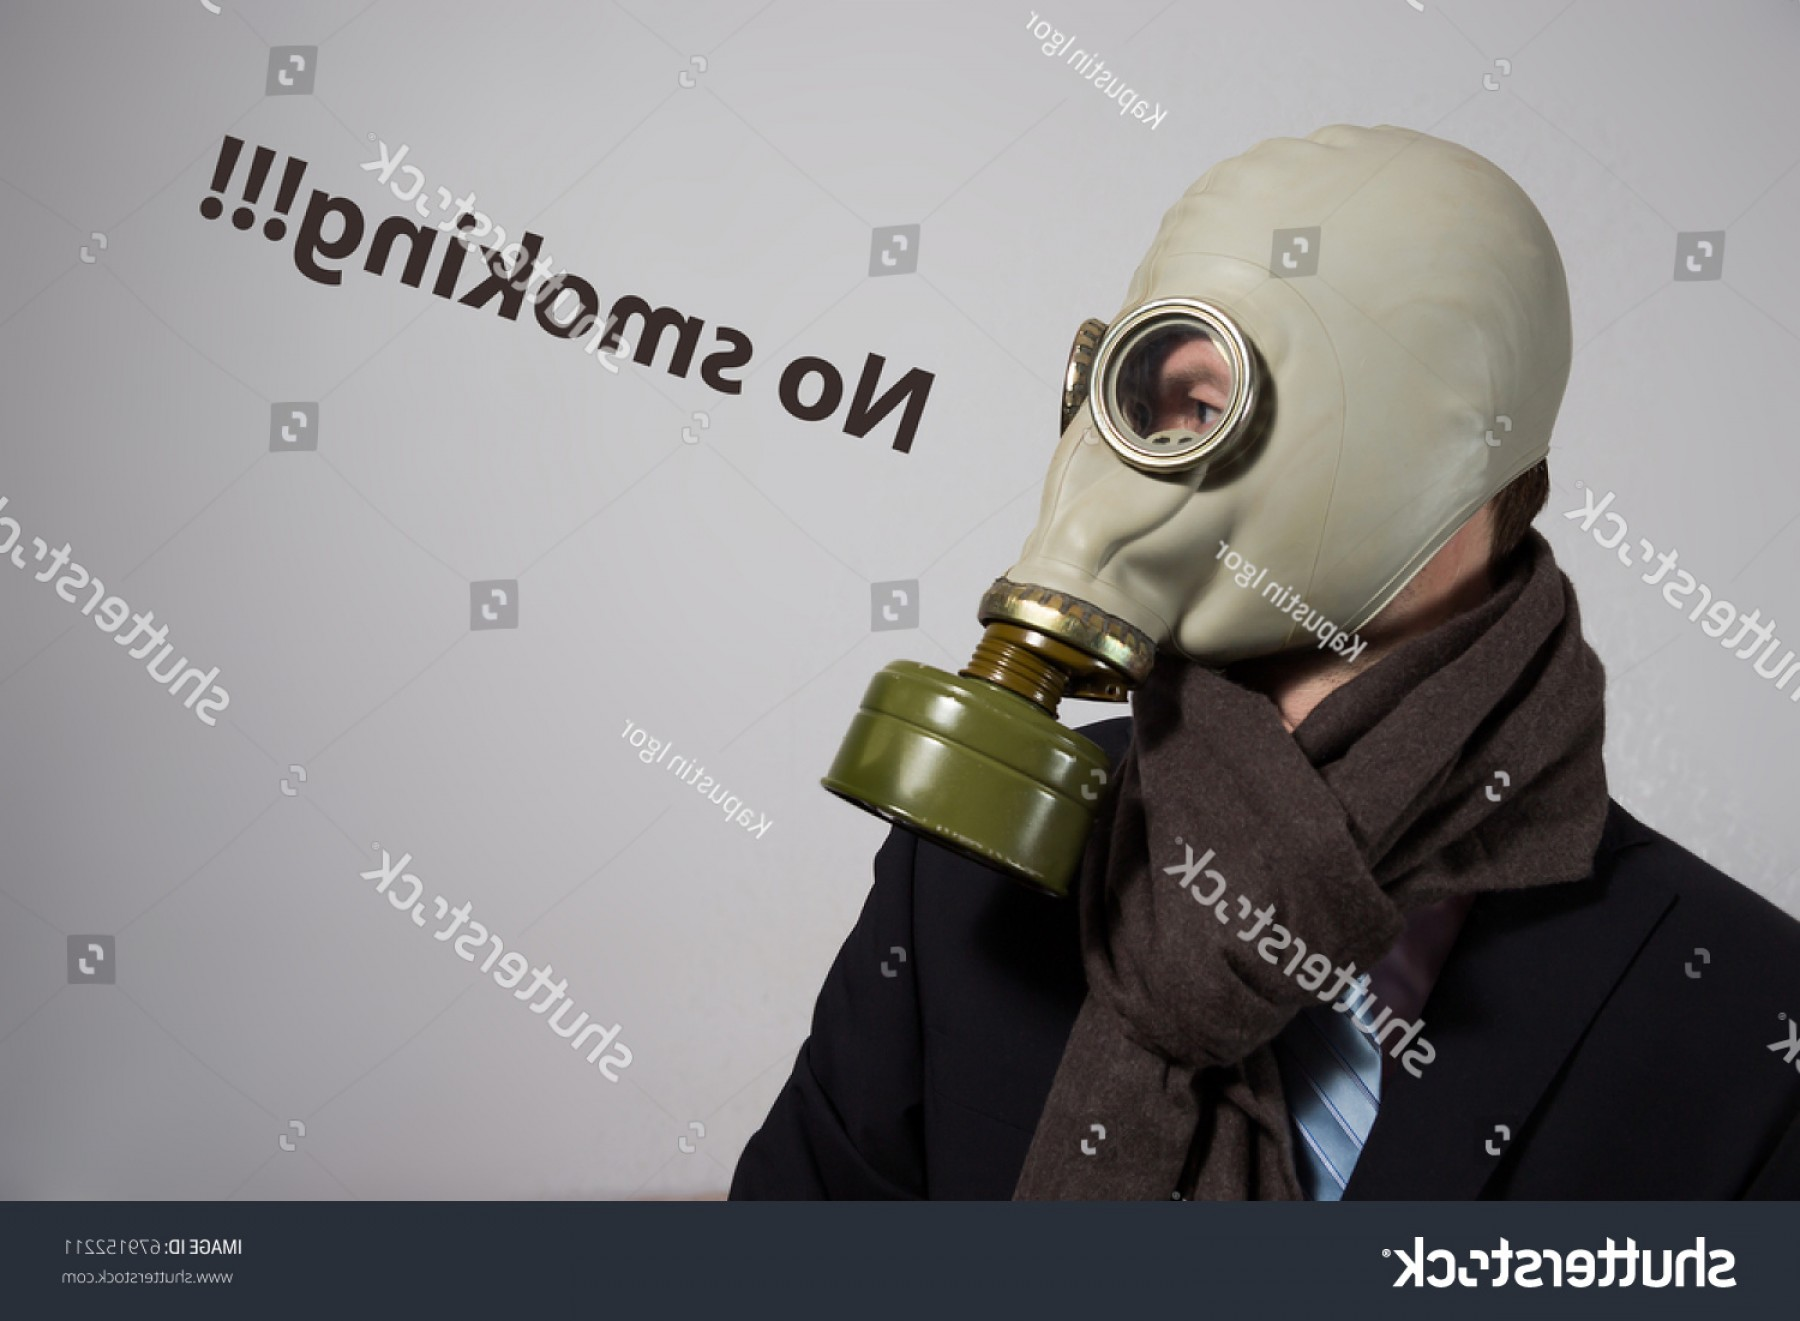 Gas Mask Suit And Tie Vector: Man Suit Tie Gas Mask No